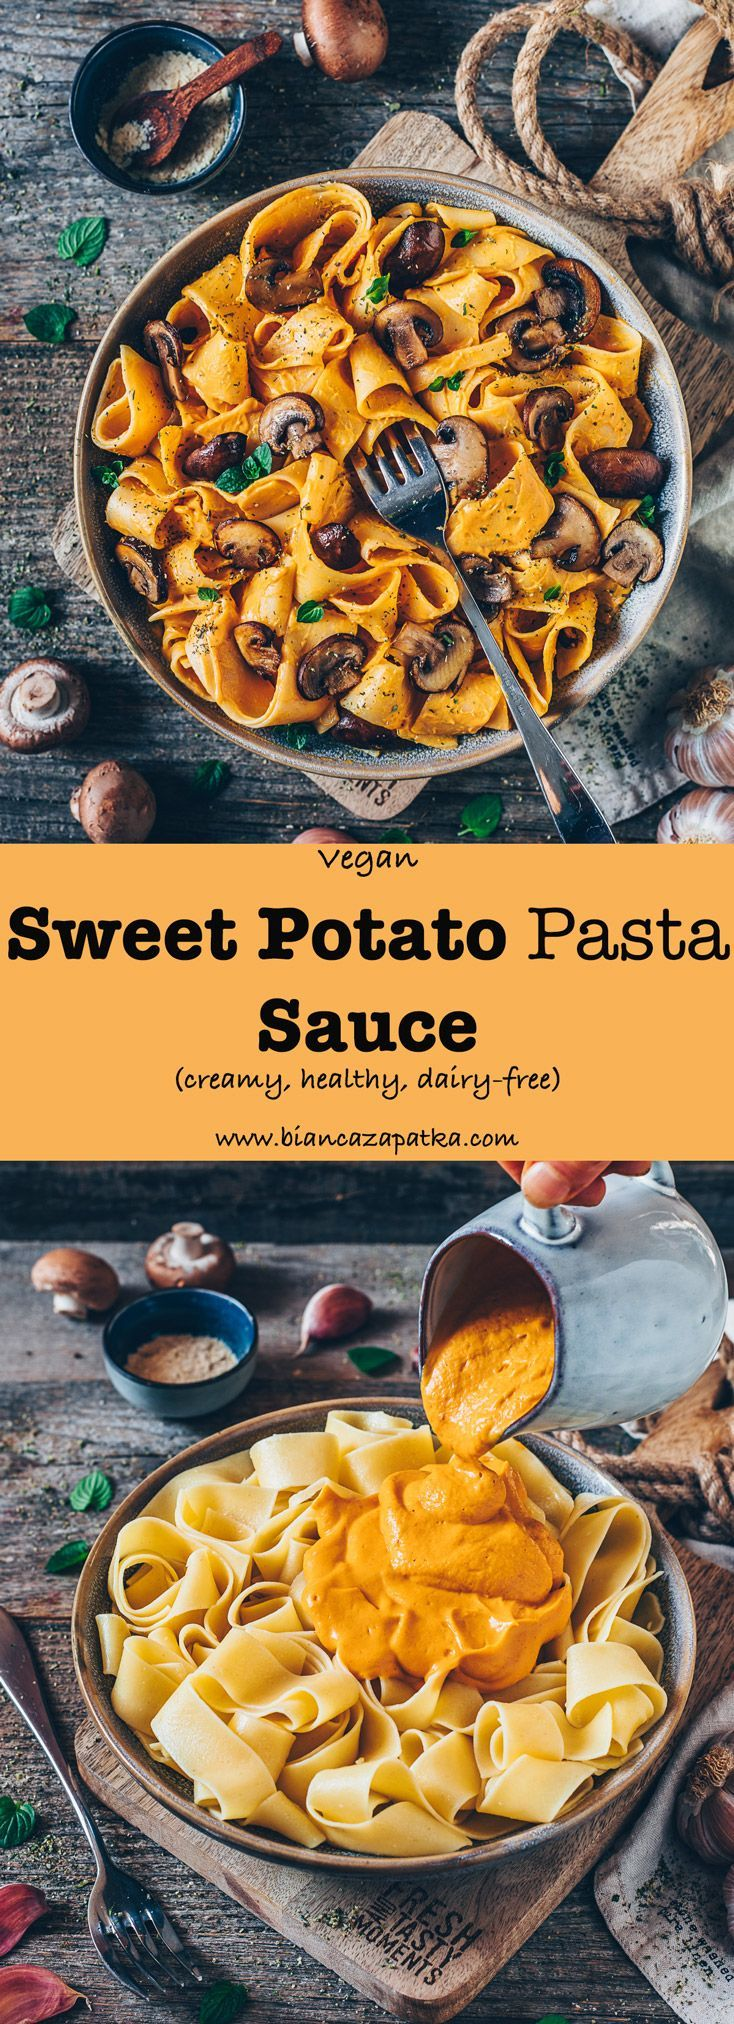 Vegan Sweet Potato Pasta Sauce (creamy, cheesy) - Bianca Zapatka | Recipes #healthideas